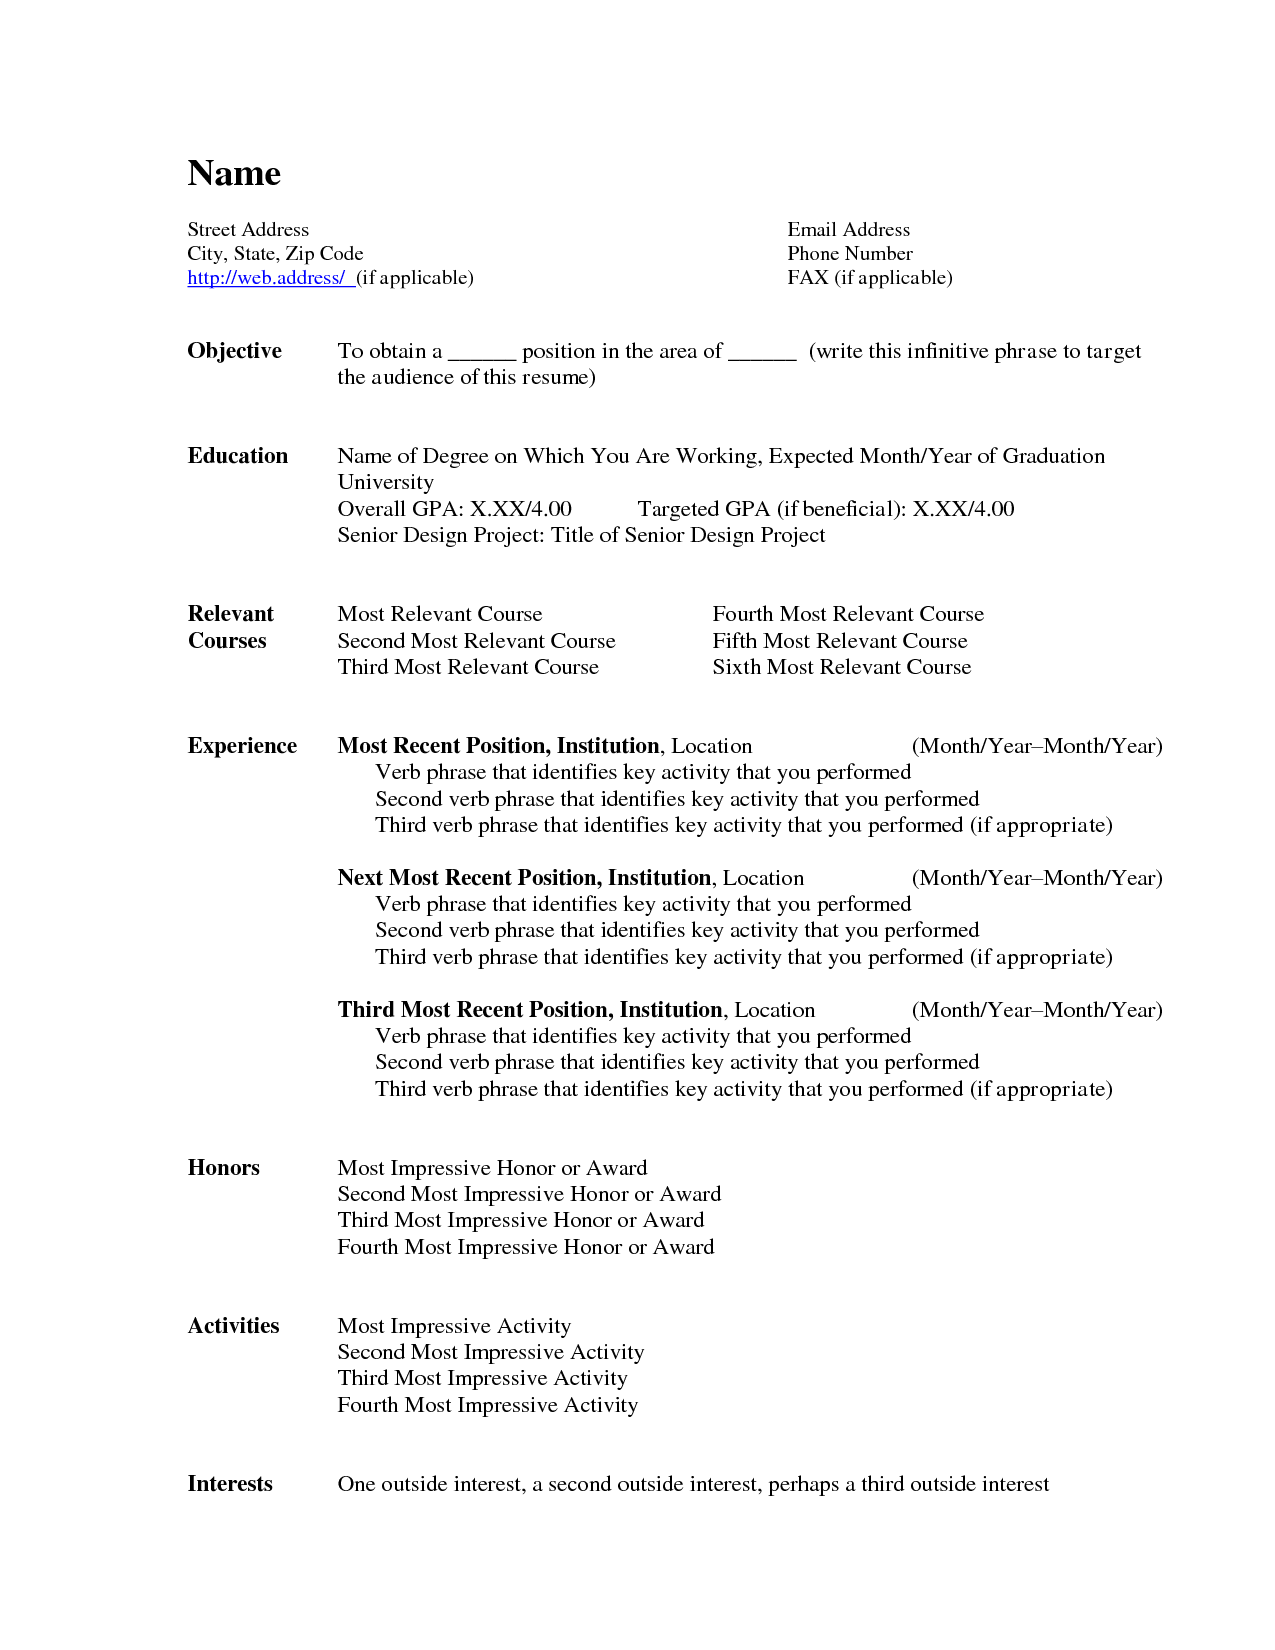 Educator Resume Templates Microsoft Word Educator Resume Templates ...